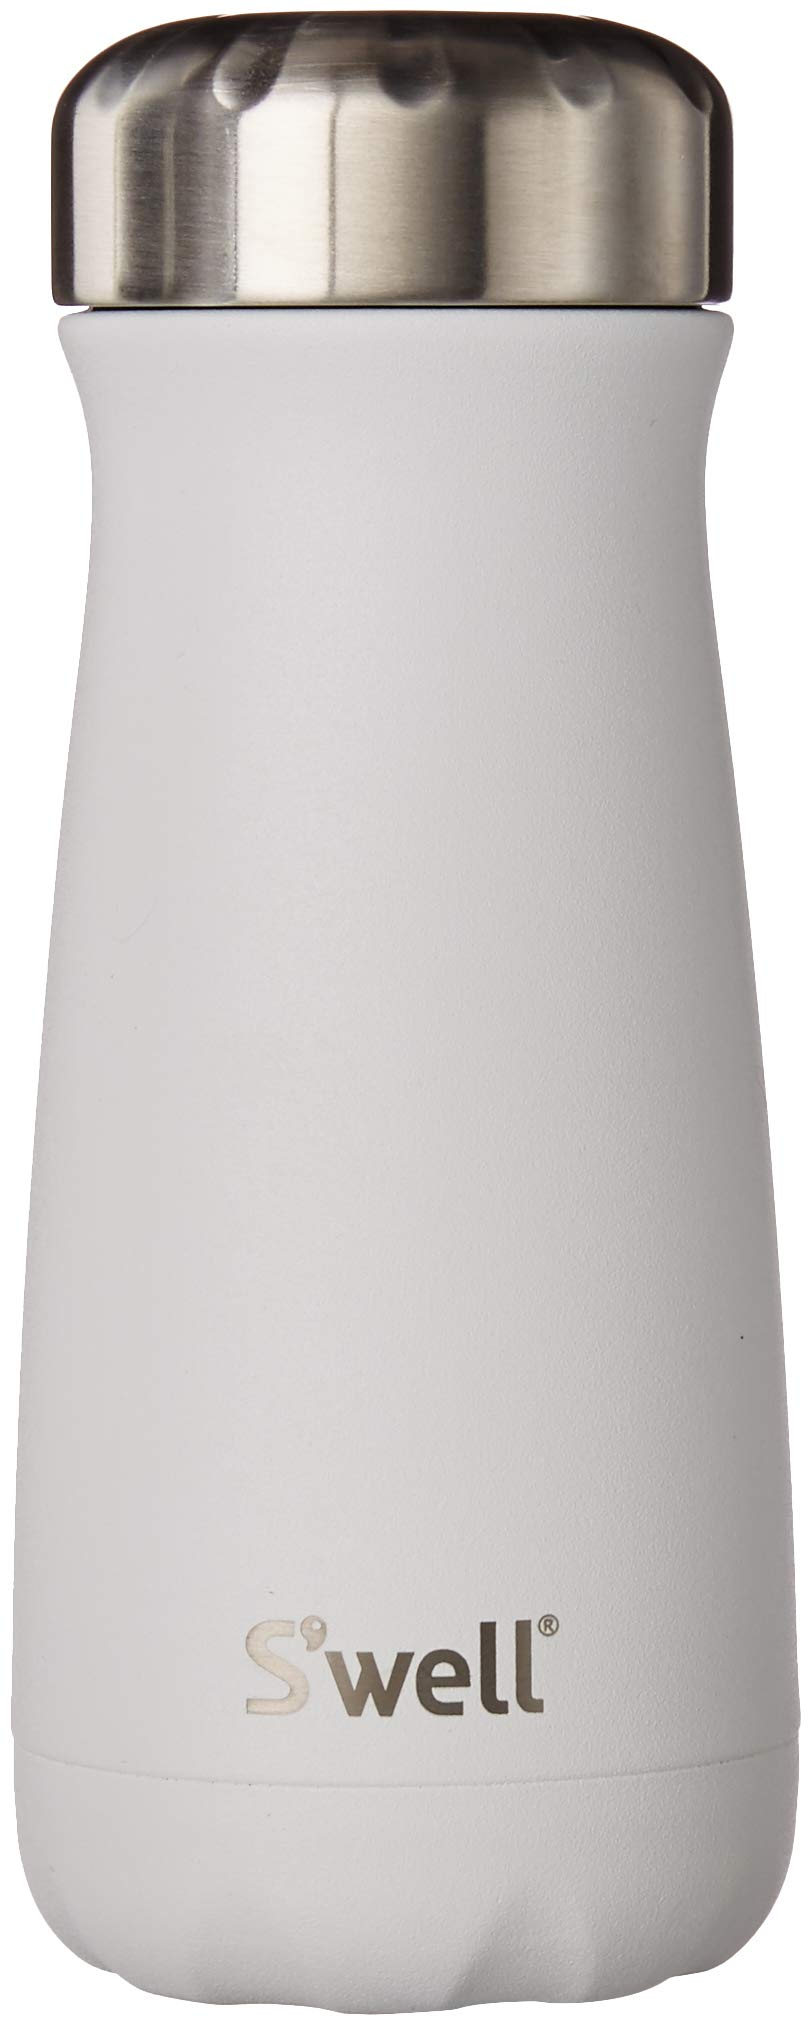 S'well Stainless Steel Travel Mug, 16 oz, Moonstone